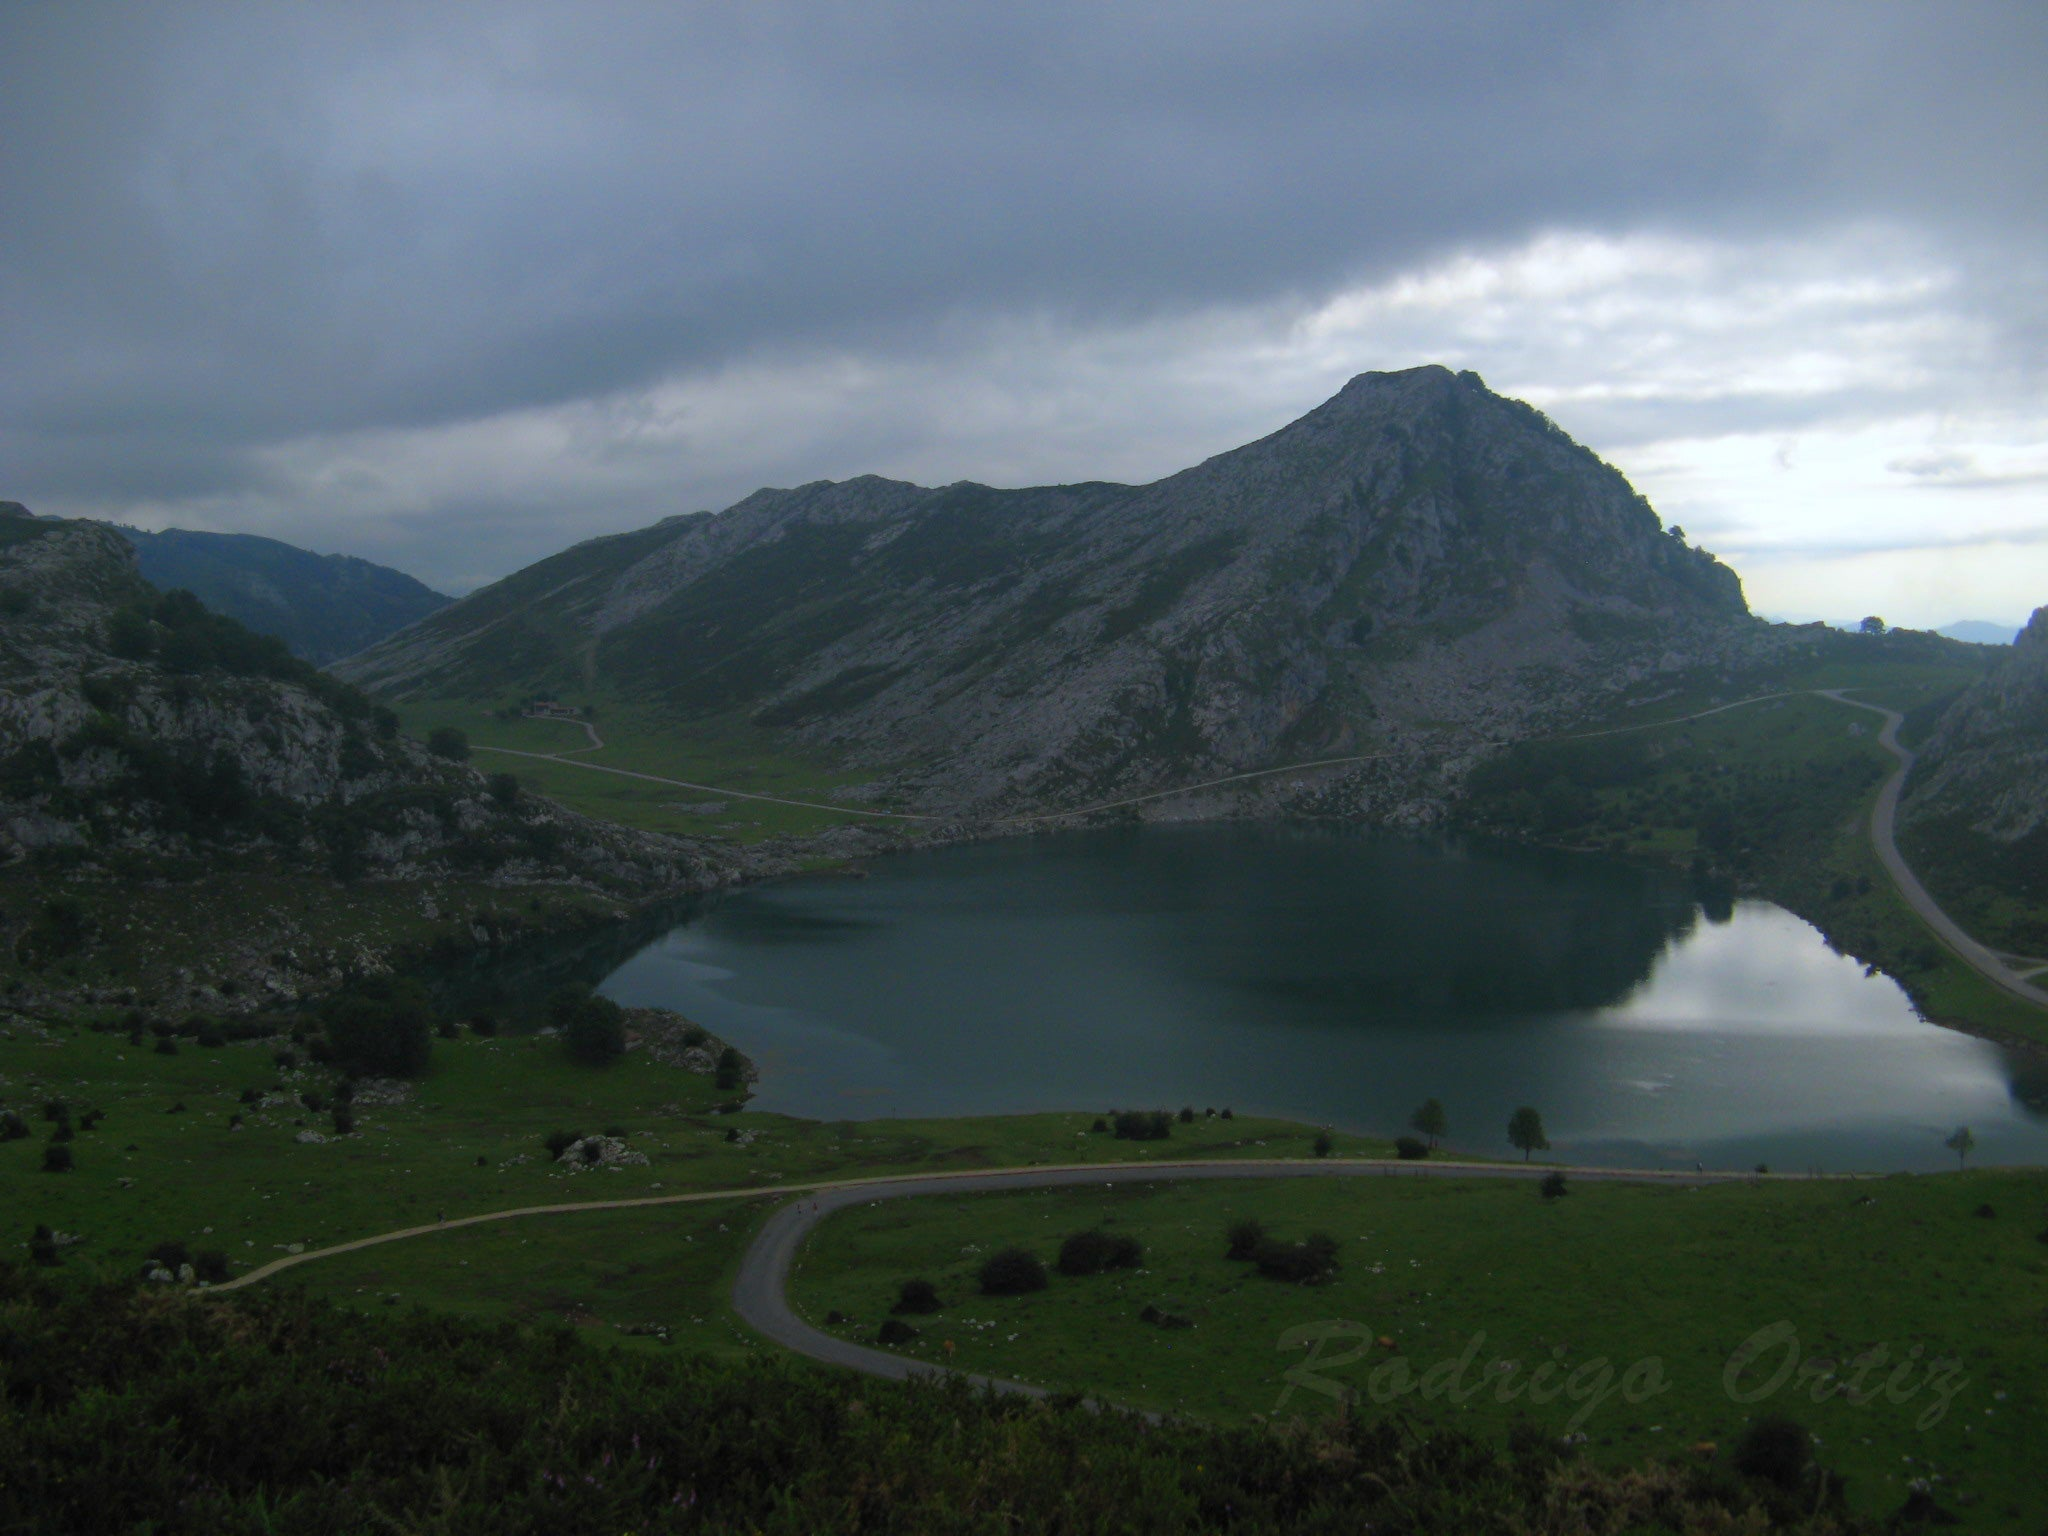 Mountain in The Lakes of Covadonga - Enol and Ercina lakes